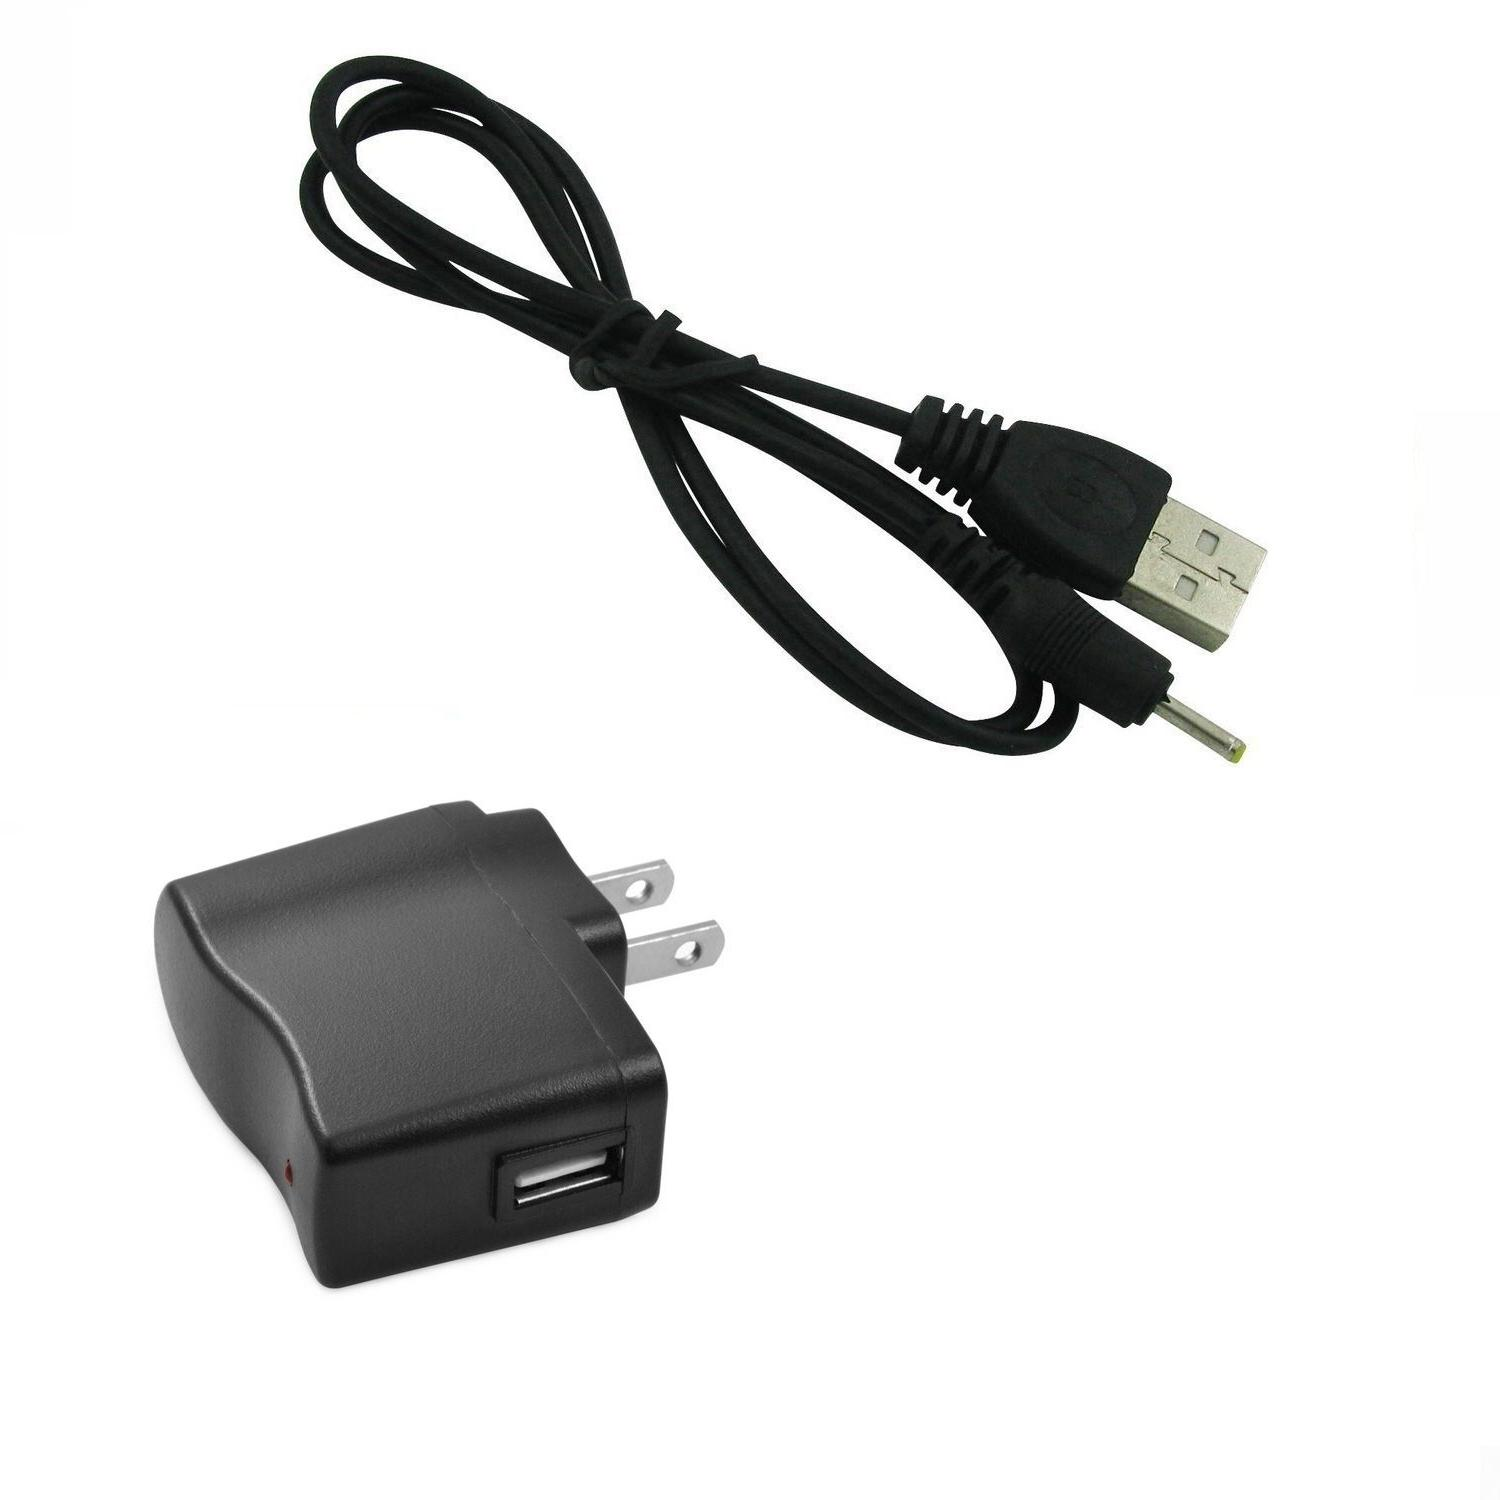 Wall Power Charger+ Cable ADAPTER for Kids Tablet Nabi 2 II